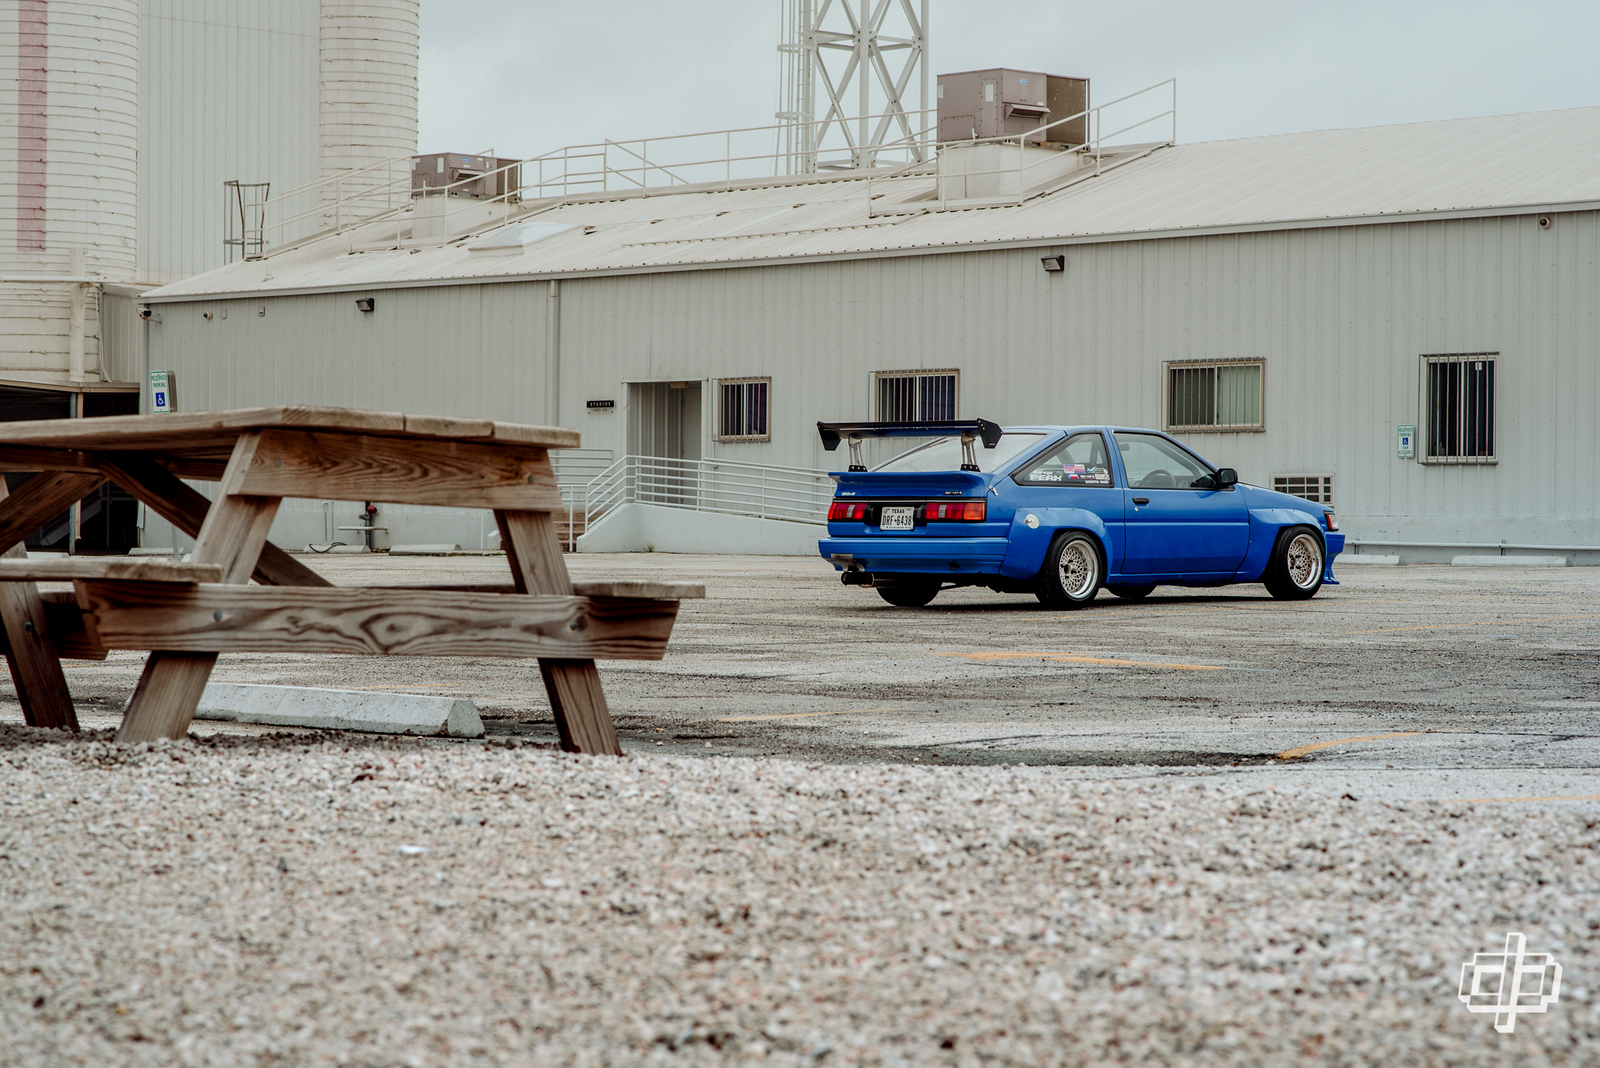 The Ricer Series - Pec's N2 AE86 Levin